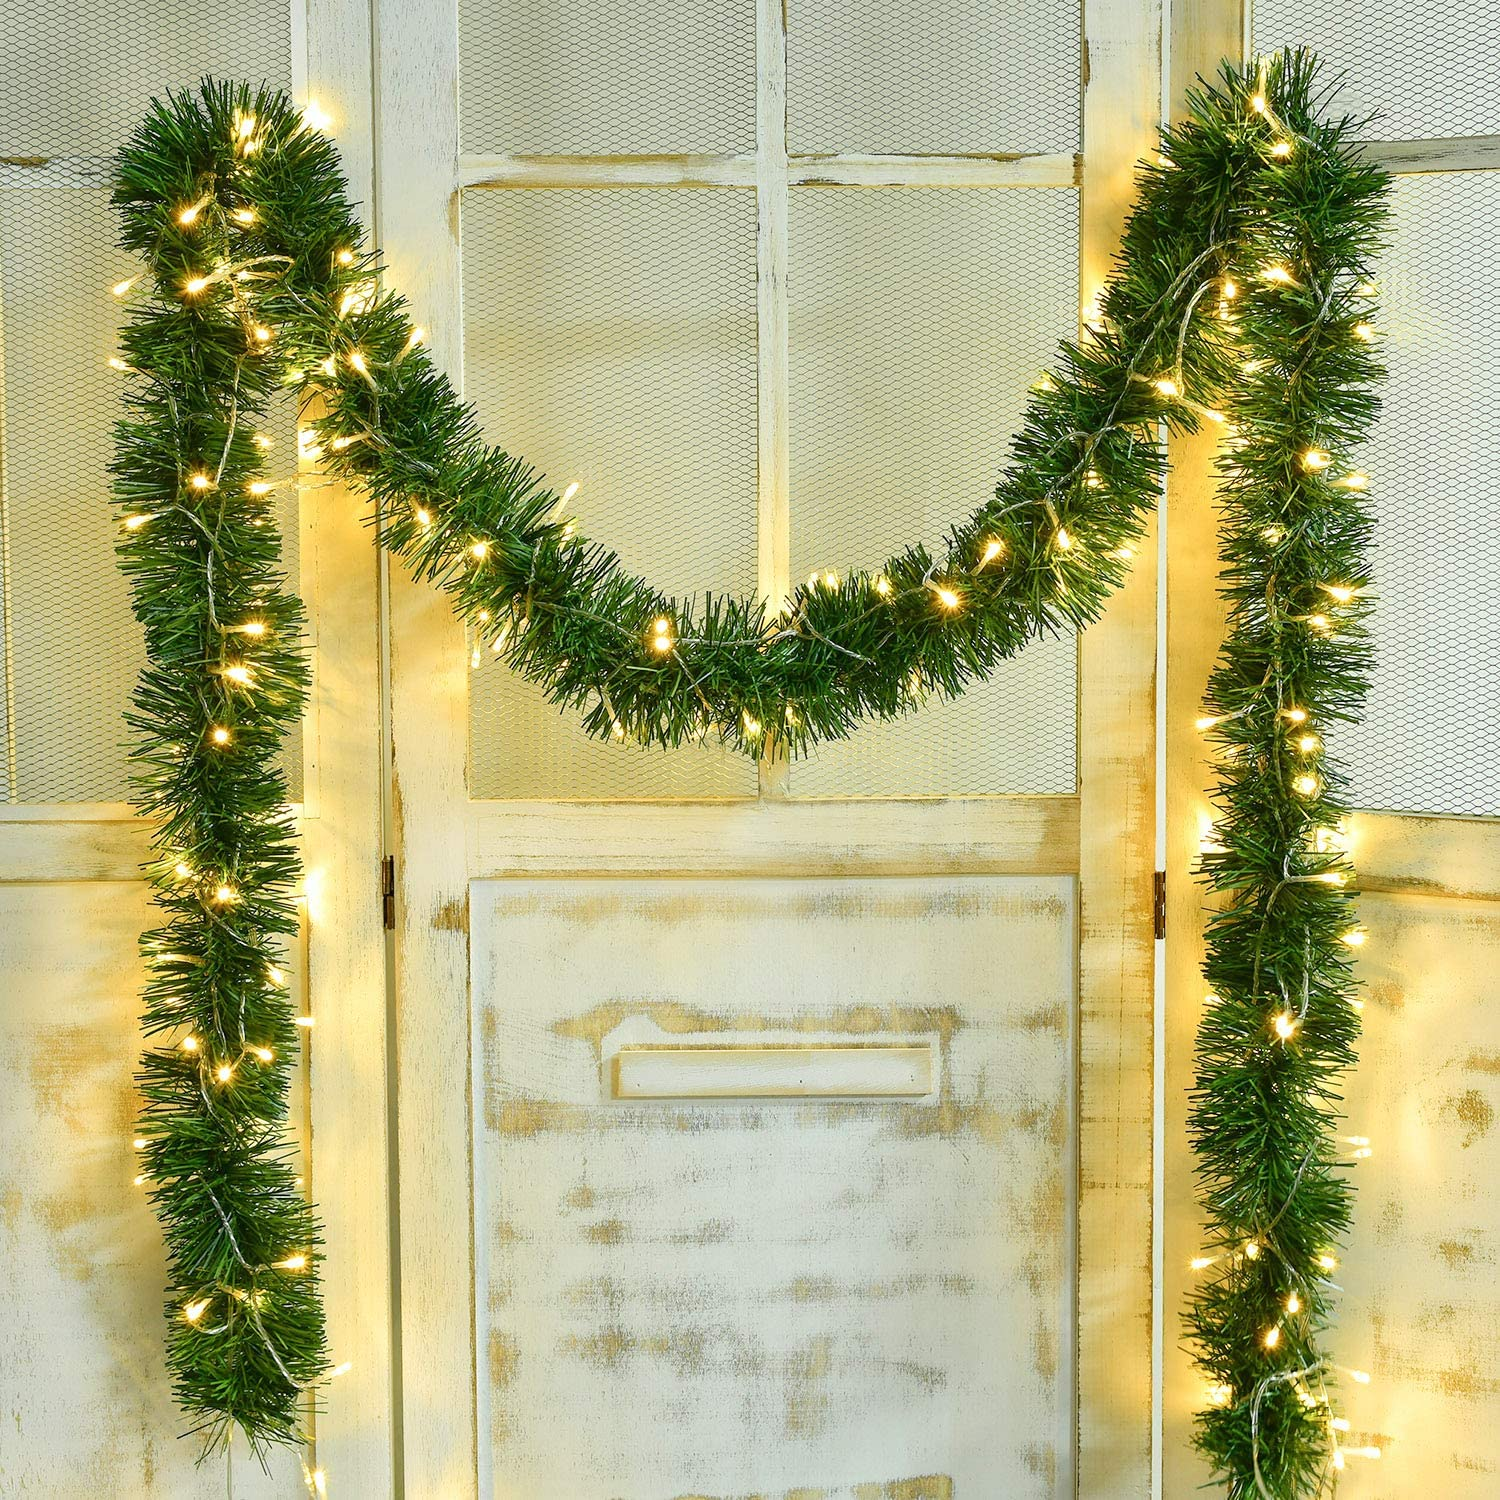 Artiflr 16.4 Foot Christmas Garland with 40 LED Light, Artificial Pine Garland Holiday Decor for Outdoor or Indoor Artificial Green Greenery, or Fireplaces Holiday Party Decorations